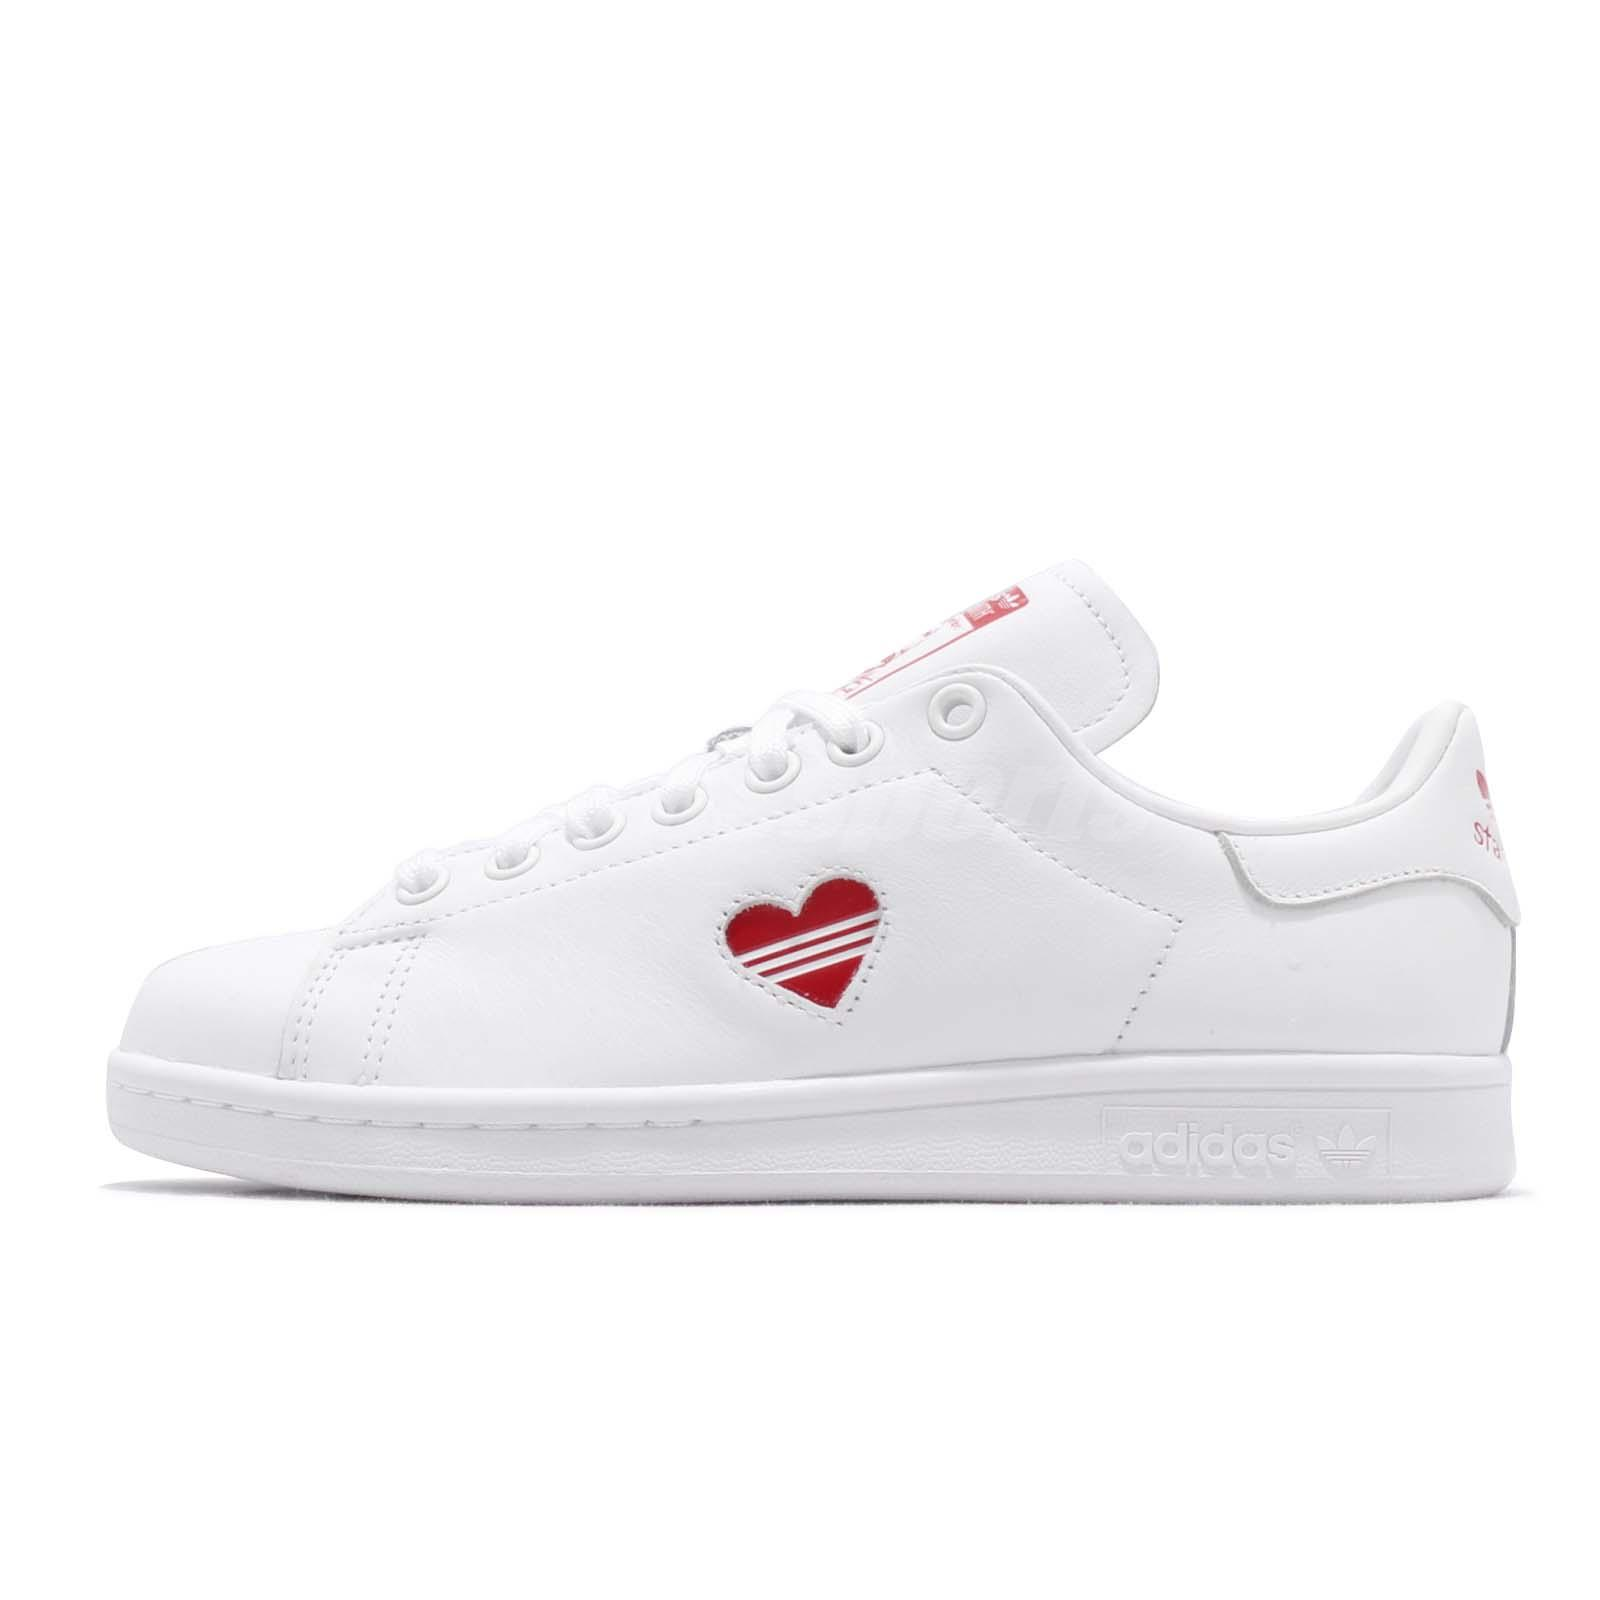 Details about adidas Originals Stan Smith W VDAY Valentines Day Women  Casual Shoes G27893